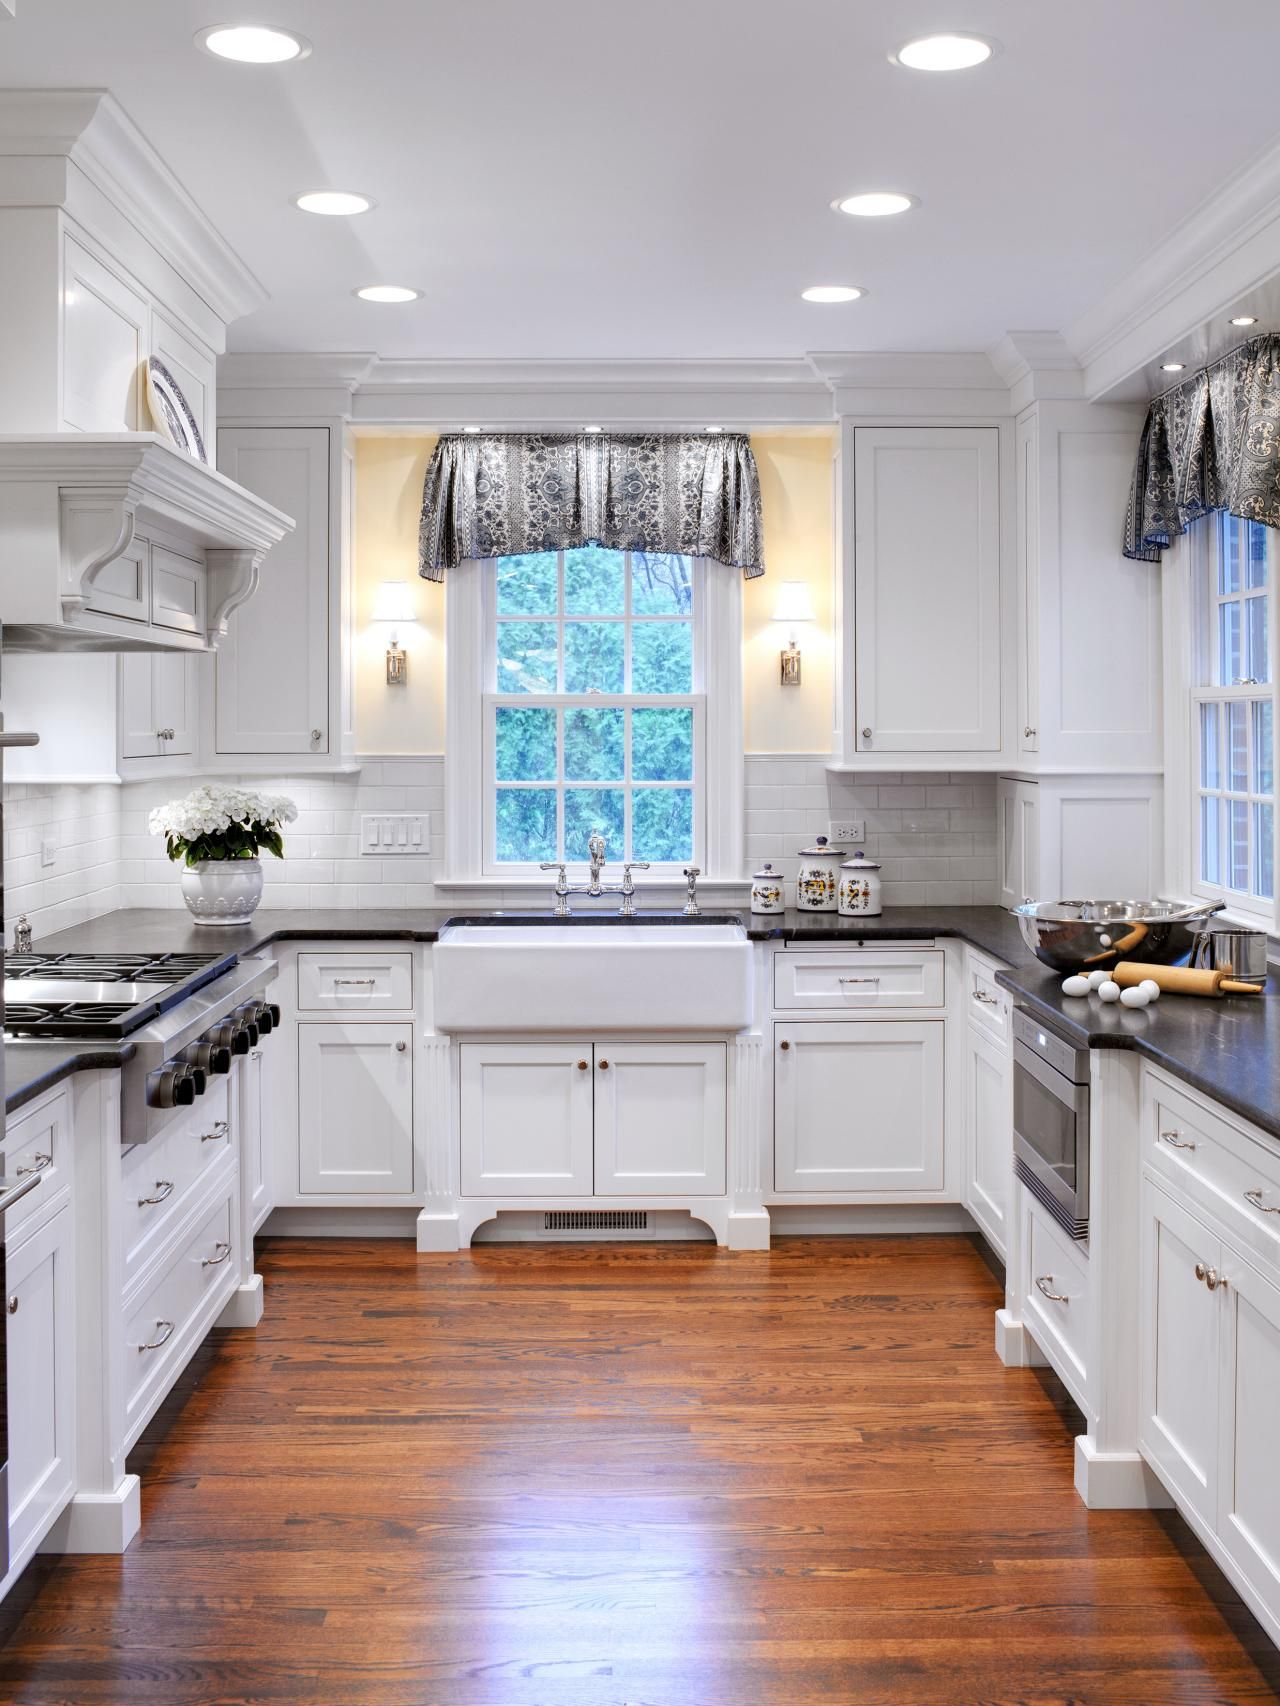 Kitchen Window Pictures The Best Options Styles & Ideas  Hgtv Beauteous Kitchen Styles Designs Design Decoration